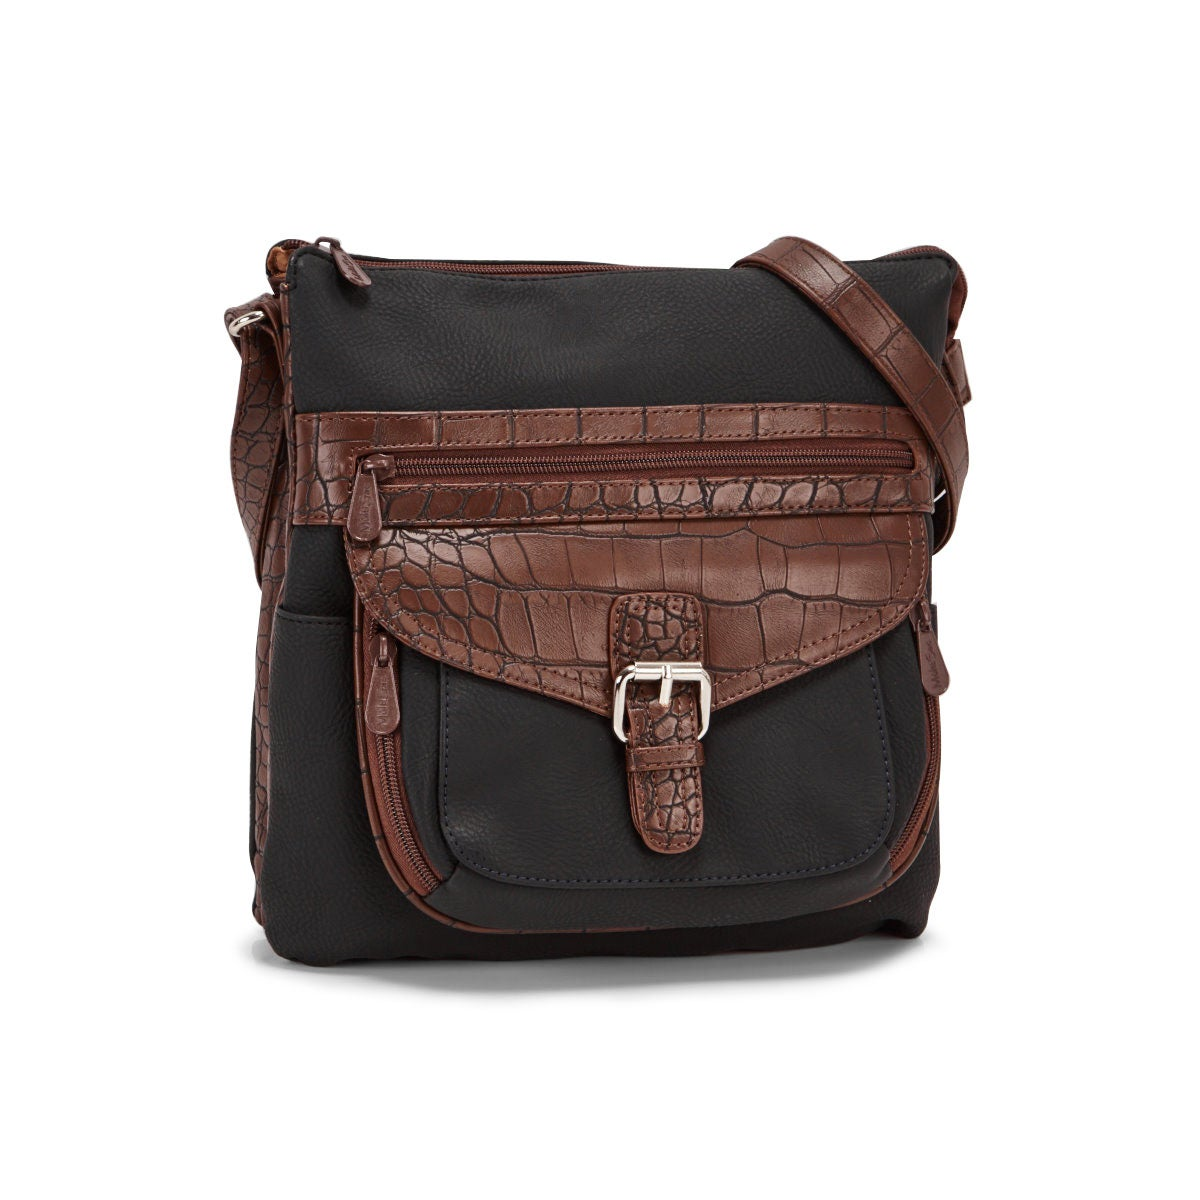 Lds Contour blk/choc cross body bag